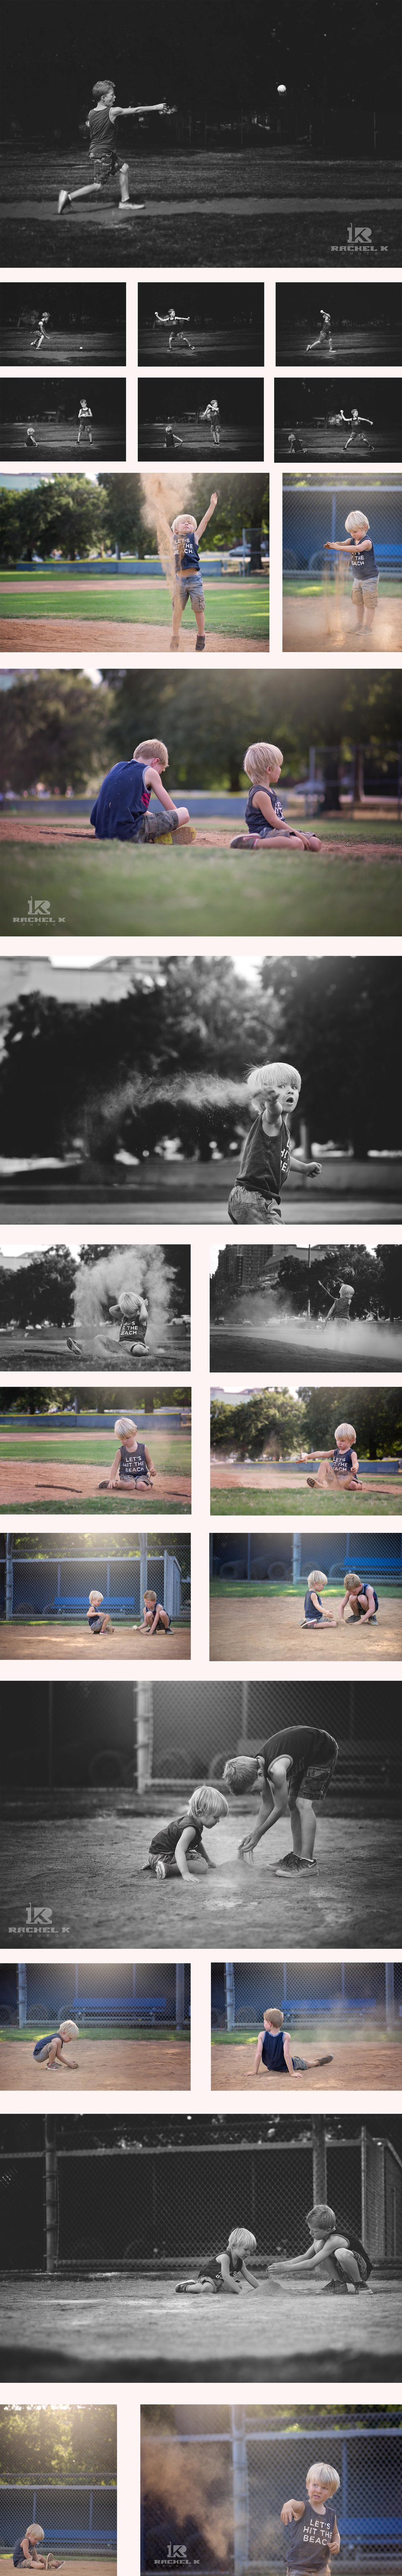 brother's lifestyle photography  at park by Rachel K Photo